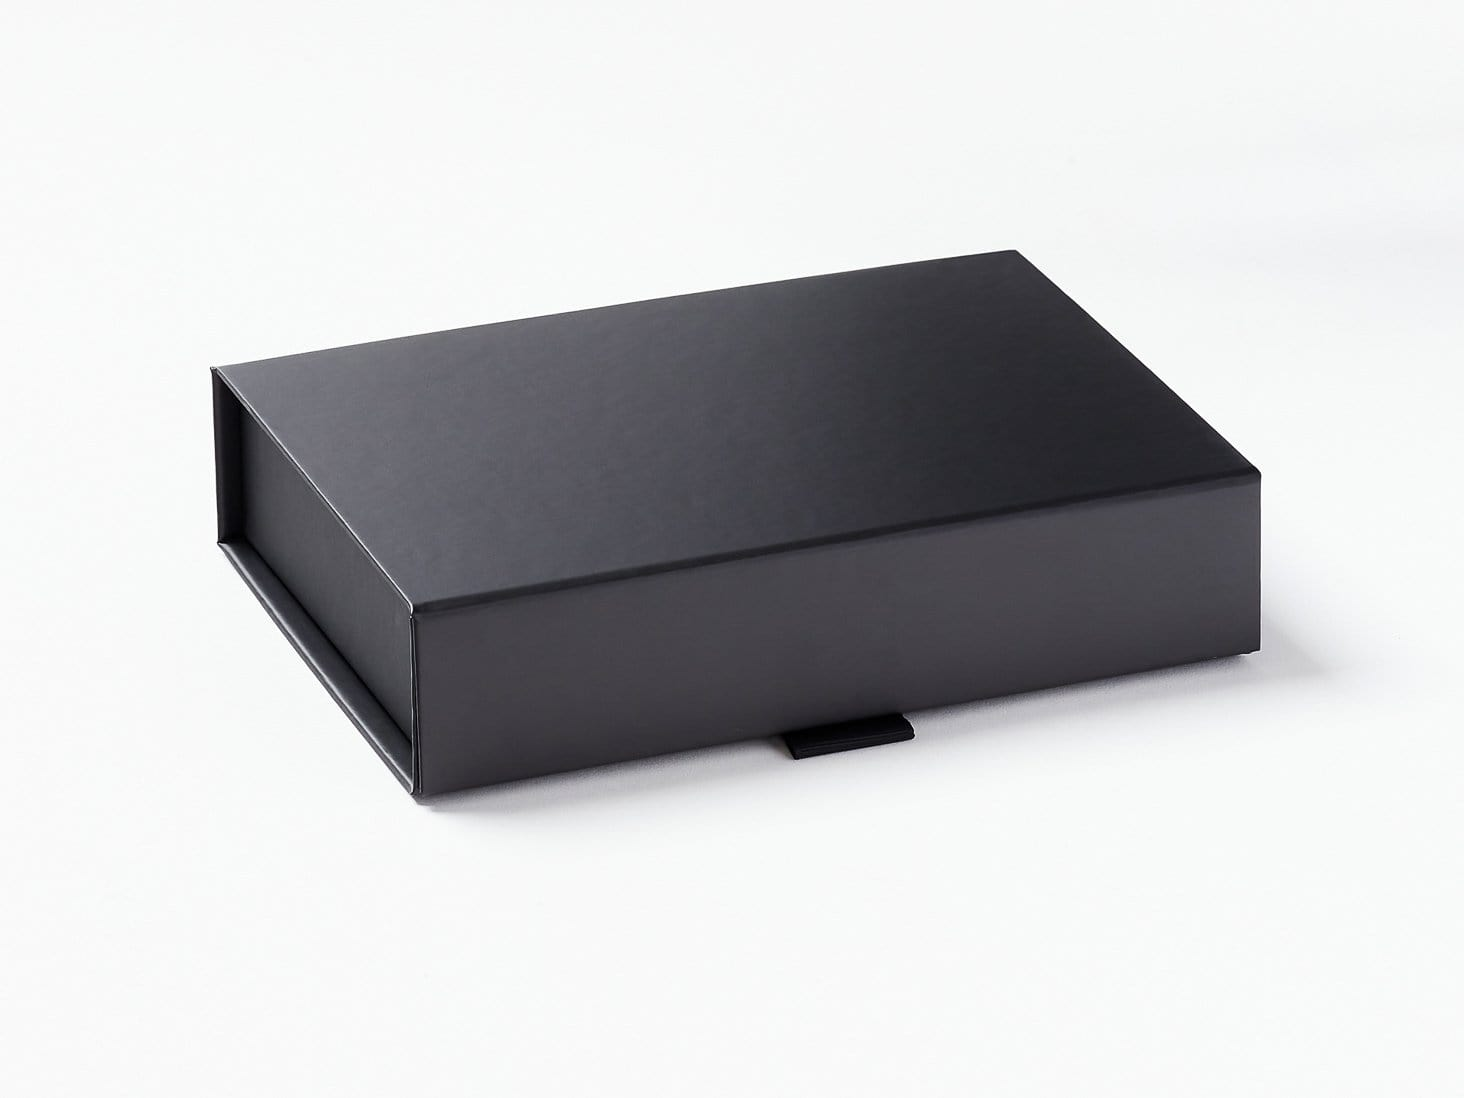 Black A6 Shallow Gift Box Asssembled